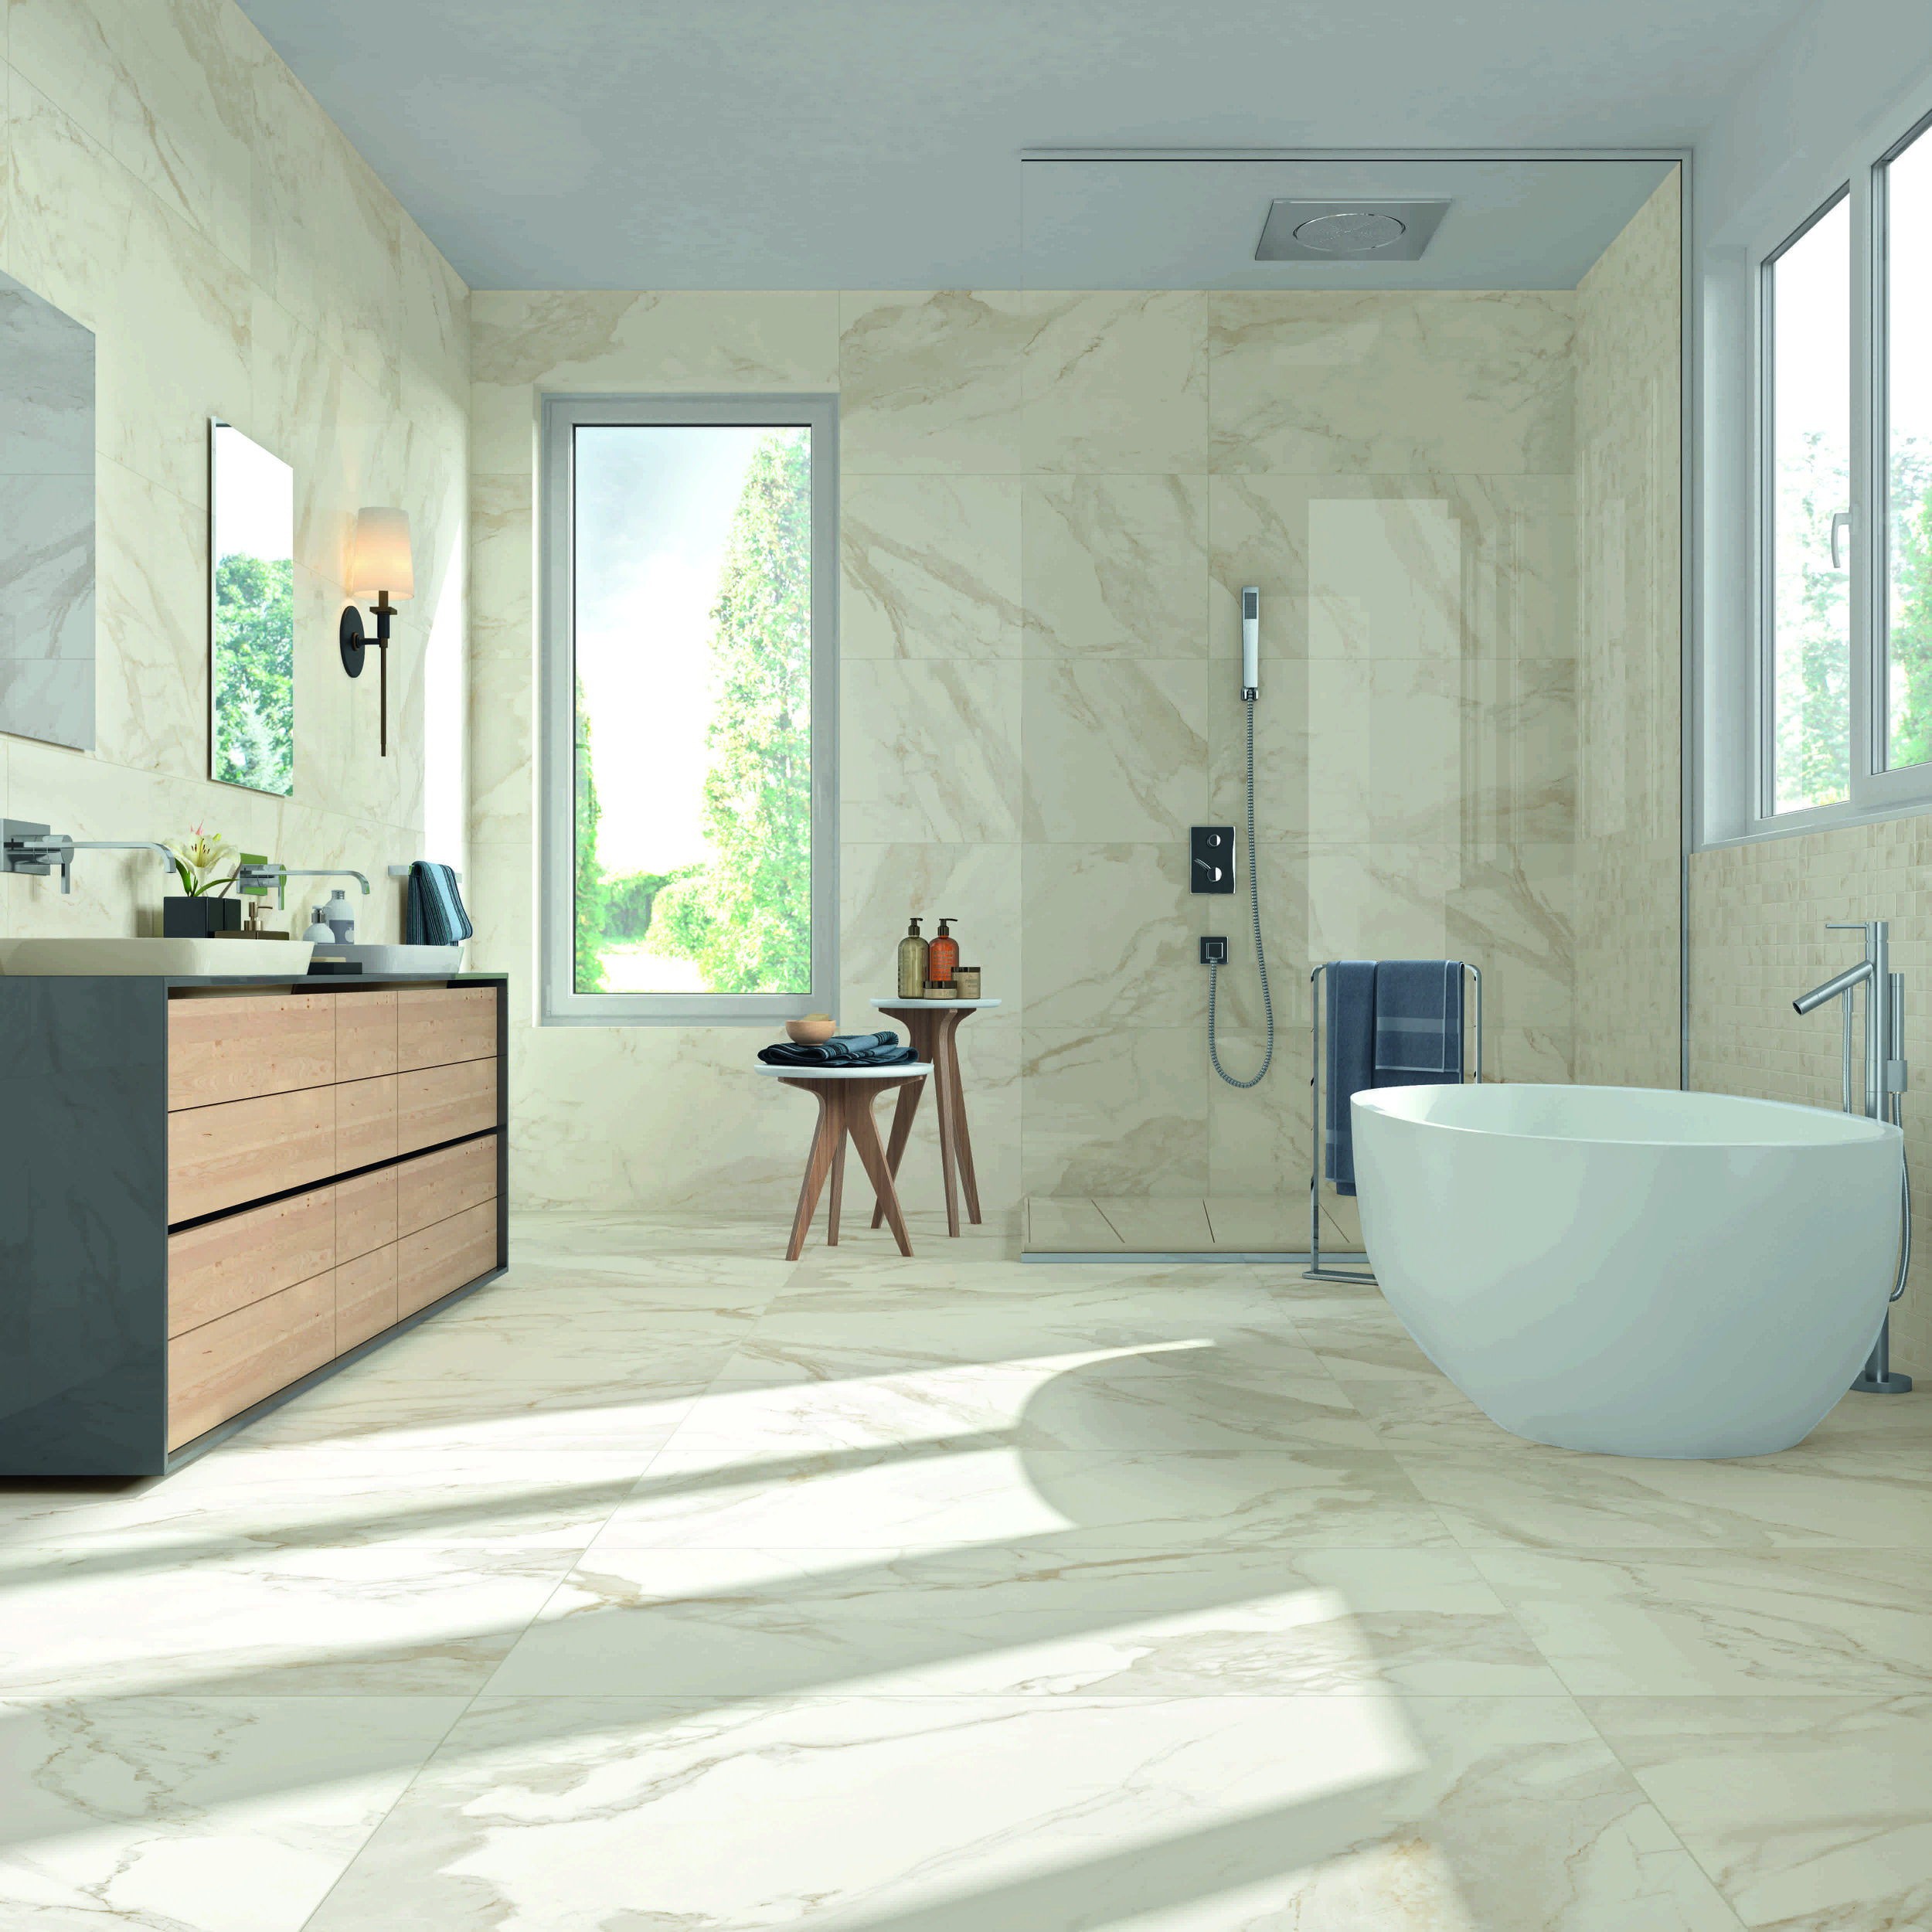 MODOMO COLLECTIONS - DISTINCTIVE PORCELAIN, COLOR-BODY COLLECTIONS OF MODOMO